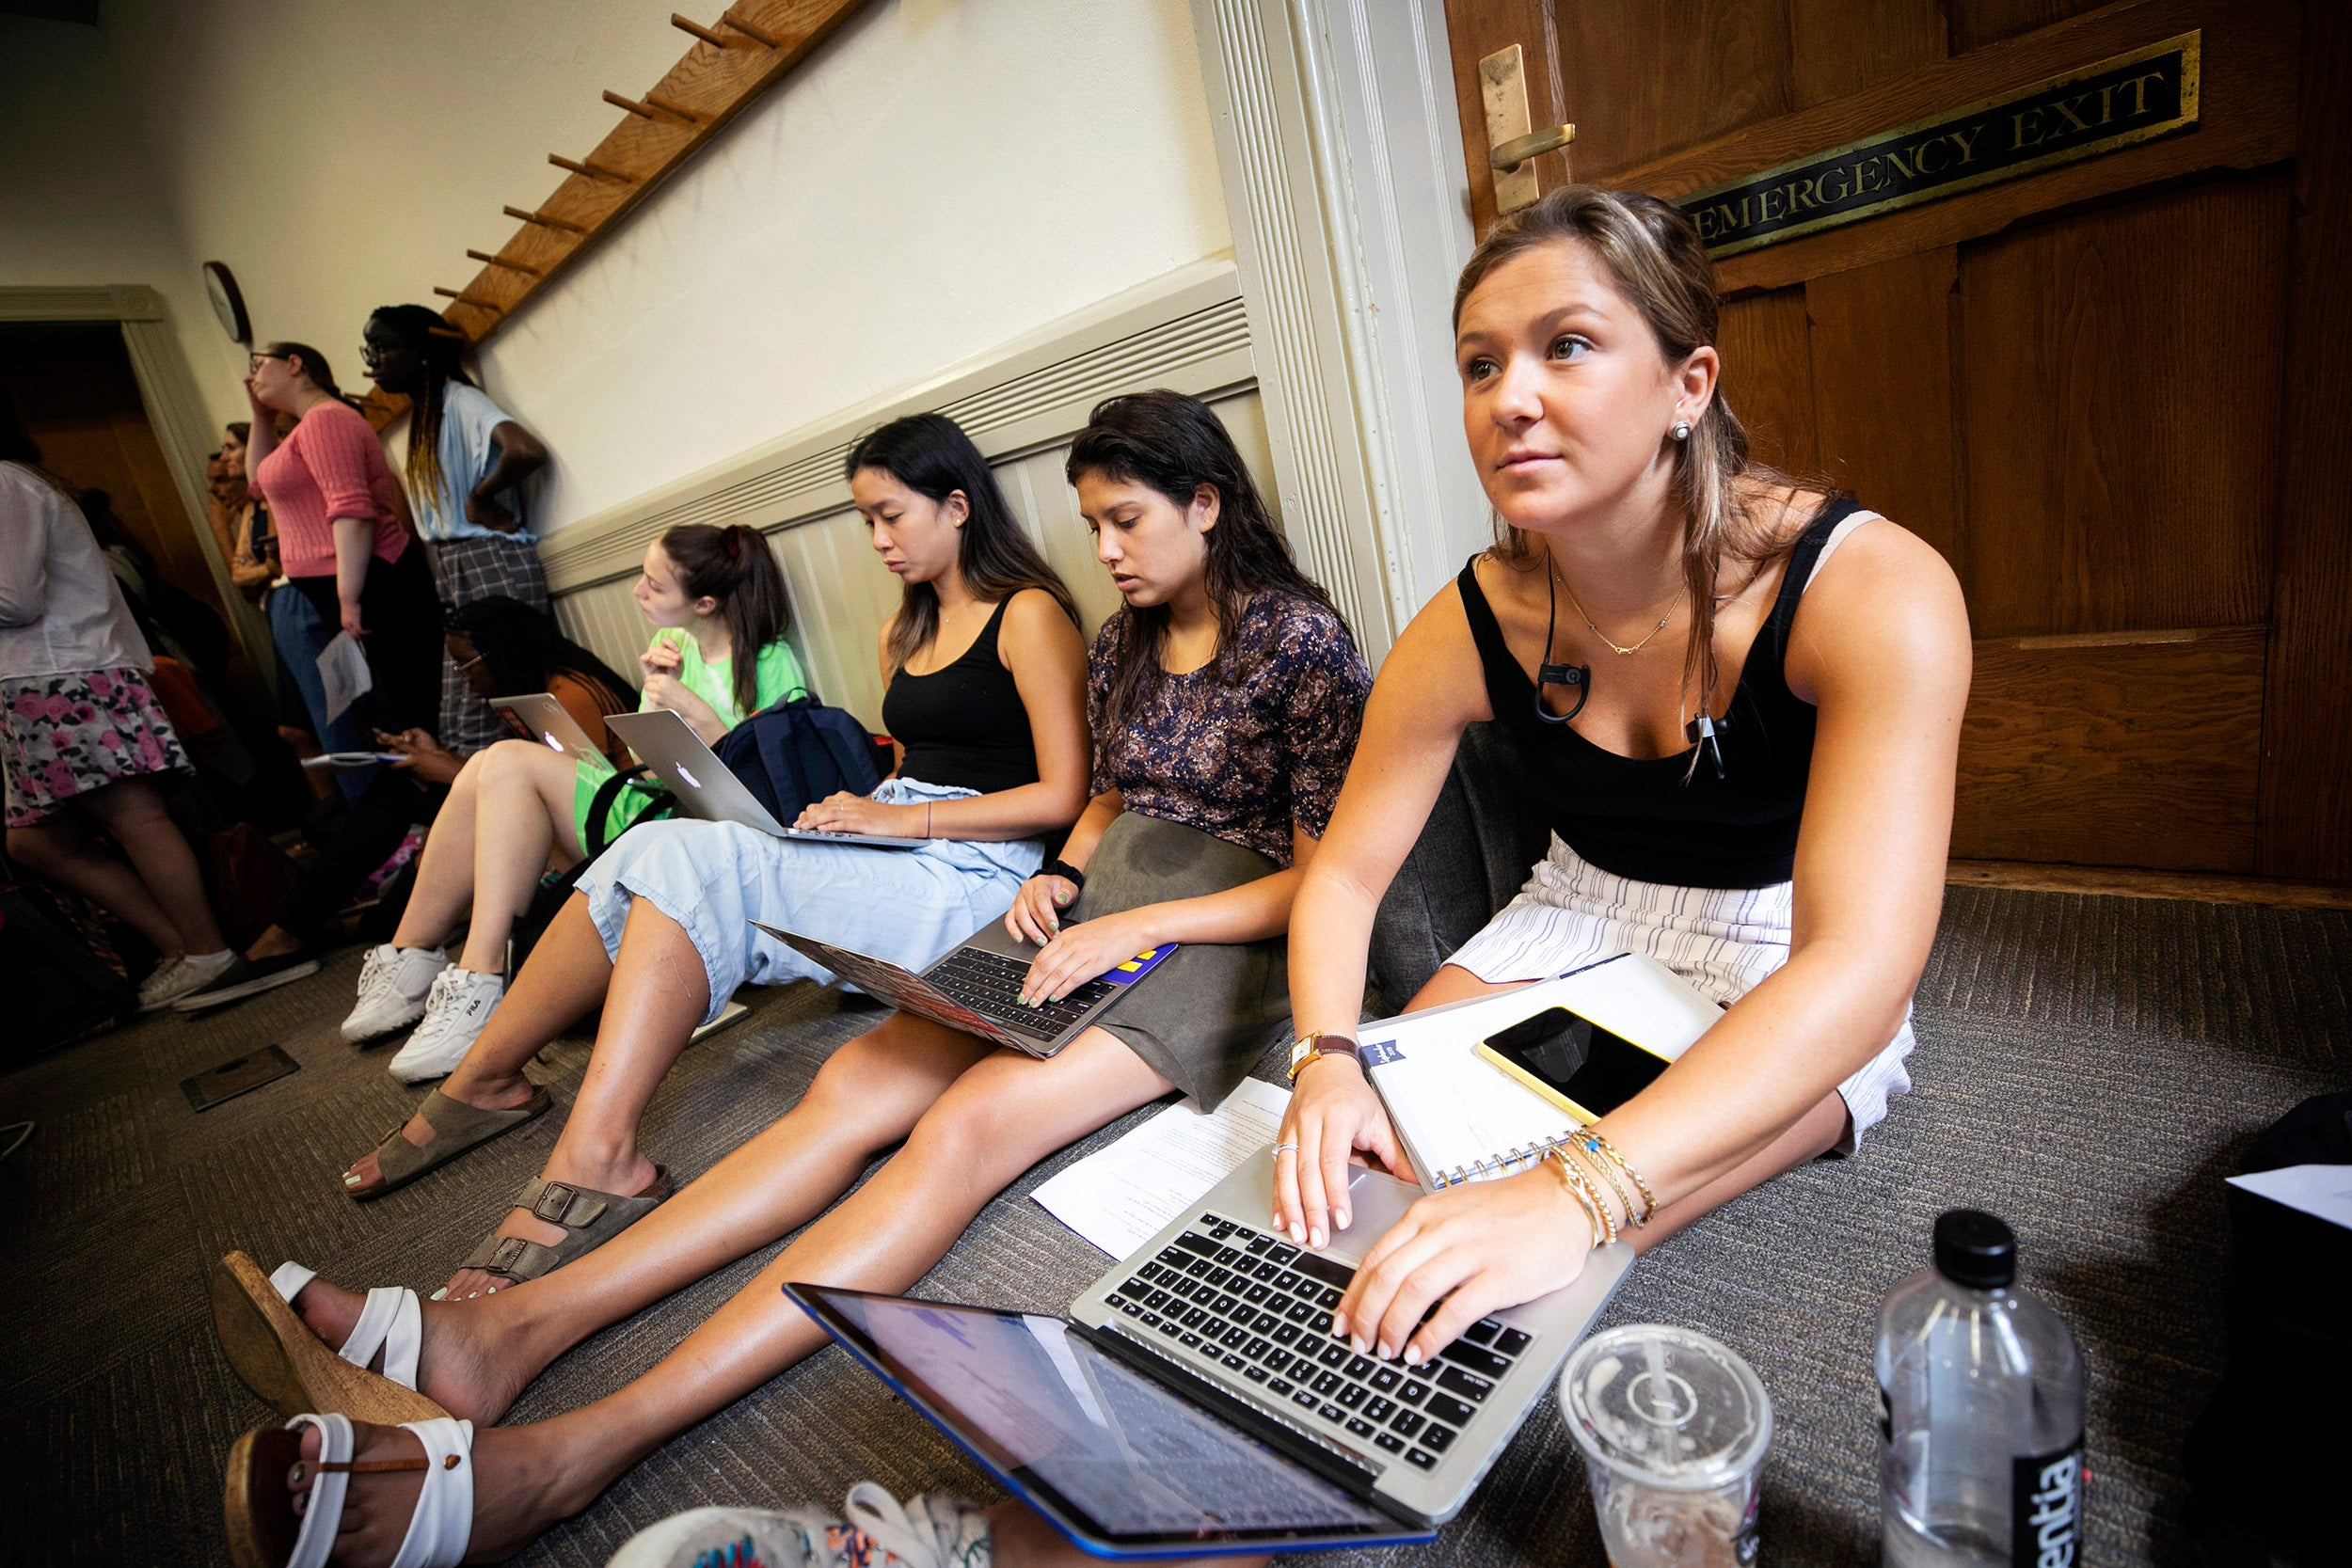 Students sit on floor listening to lecture.